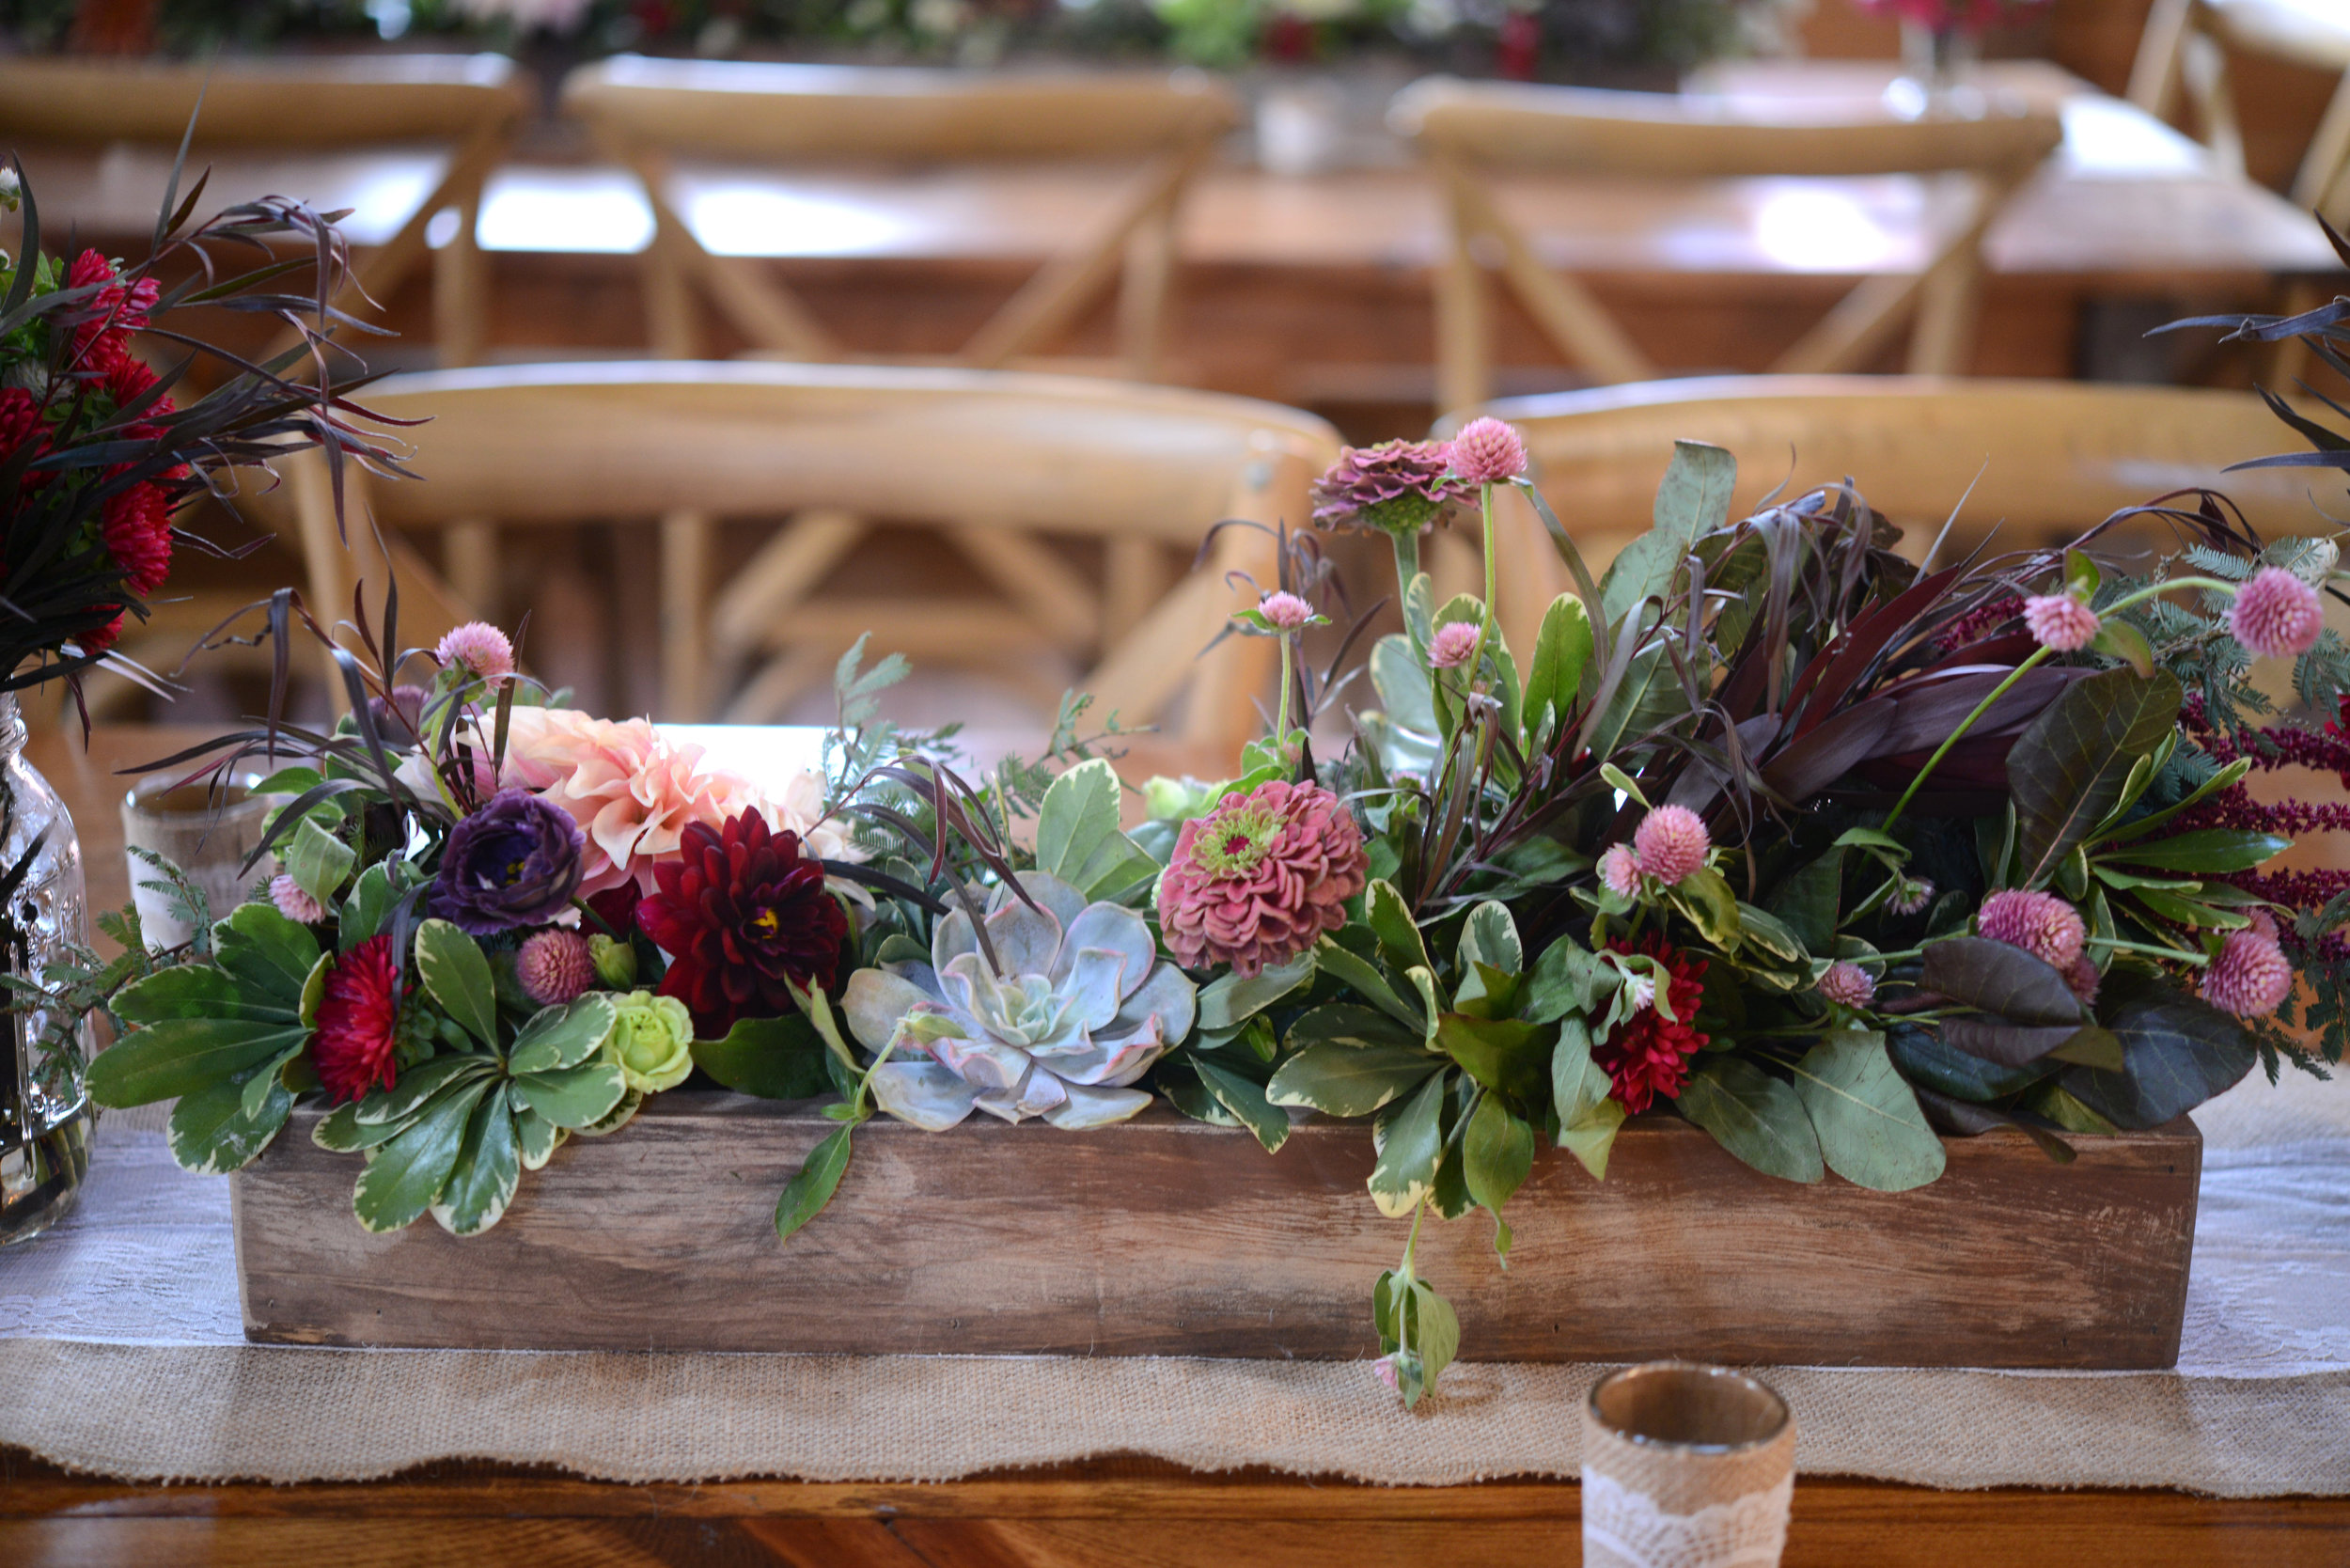 The succulents then worked perfectly in the low and lush, custom-built rustic wood boxes that decorated the long reception tables.